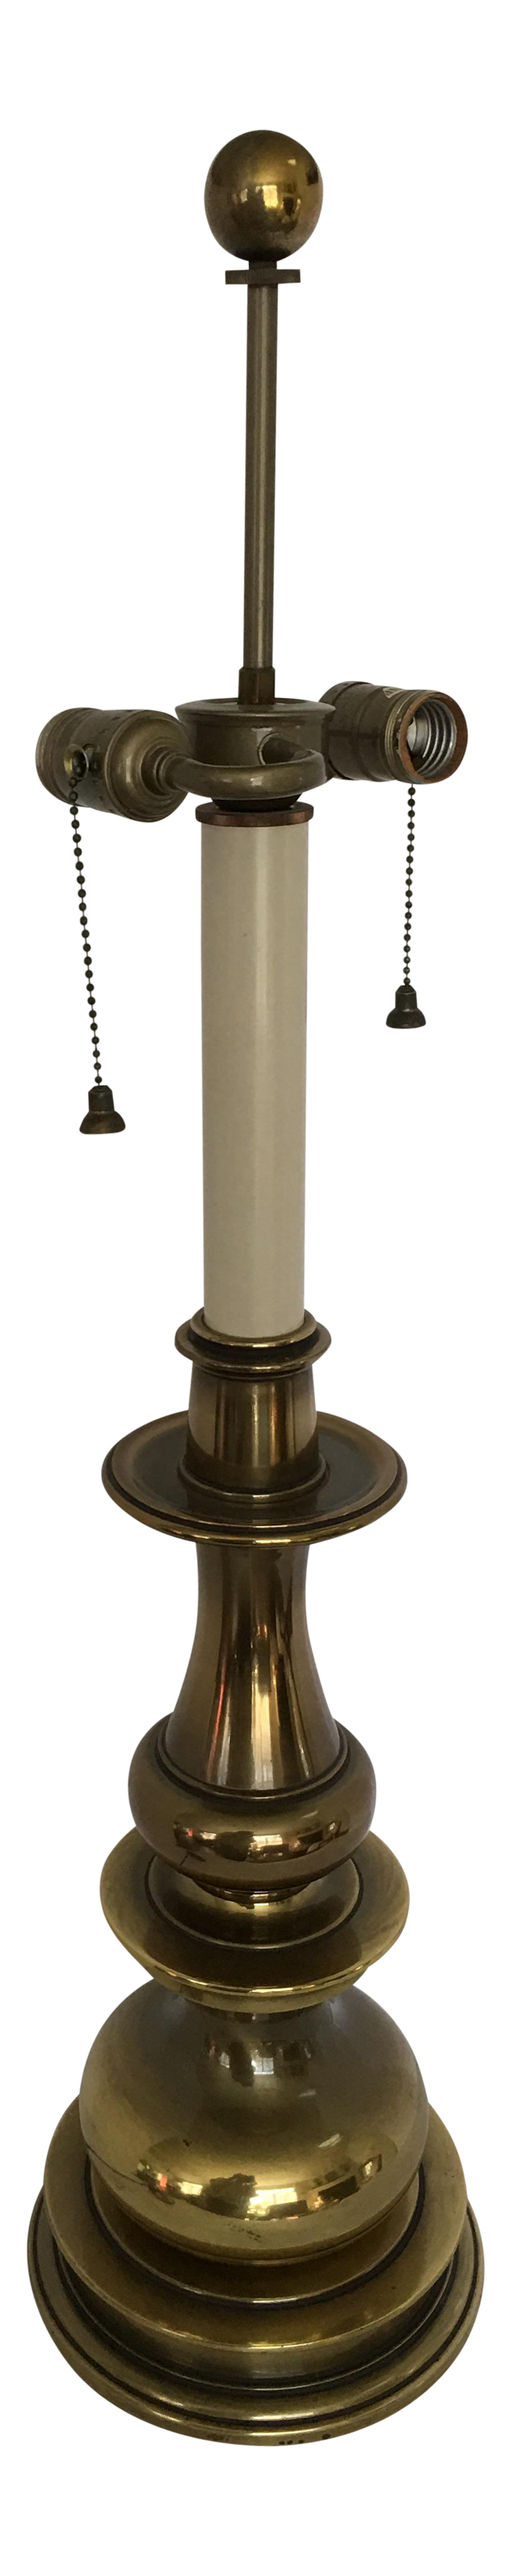 Vintage stiffel brass table lamps - Image Of Vintage Stiffel Brass Baluster Double Socket Table Lamp